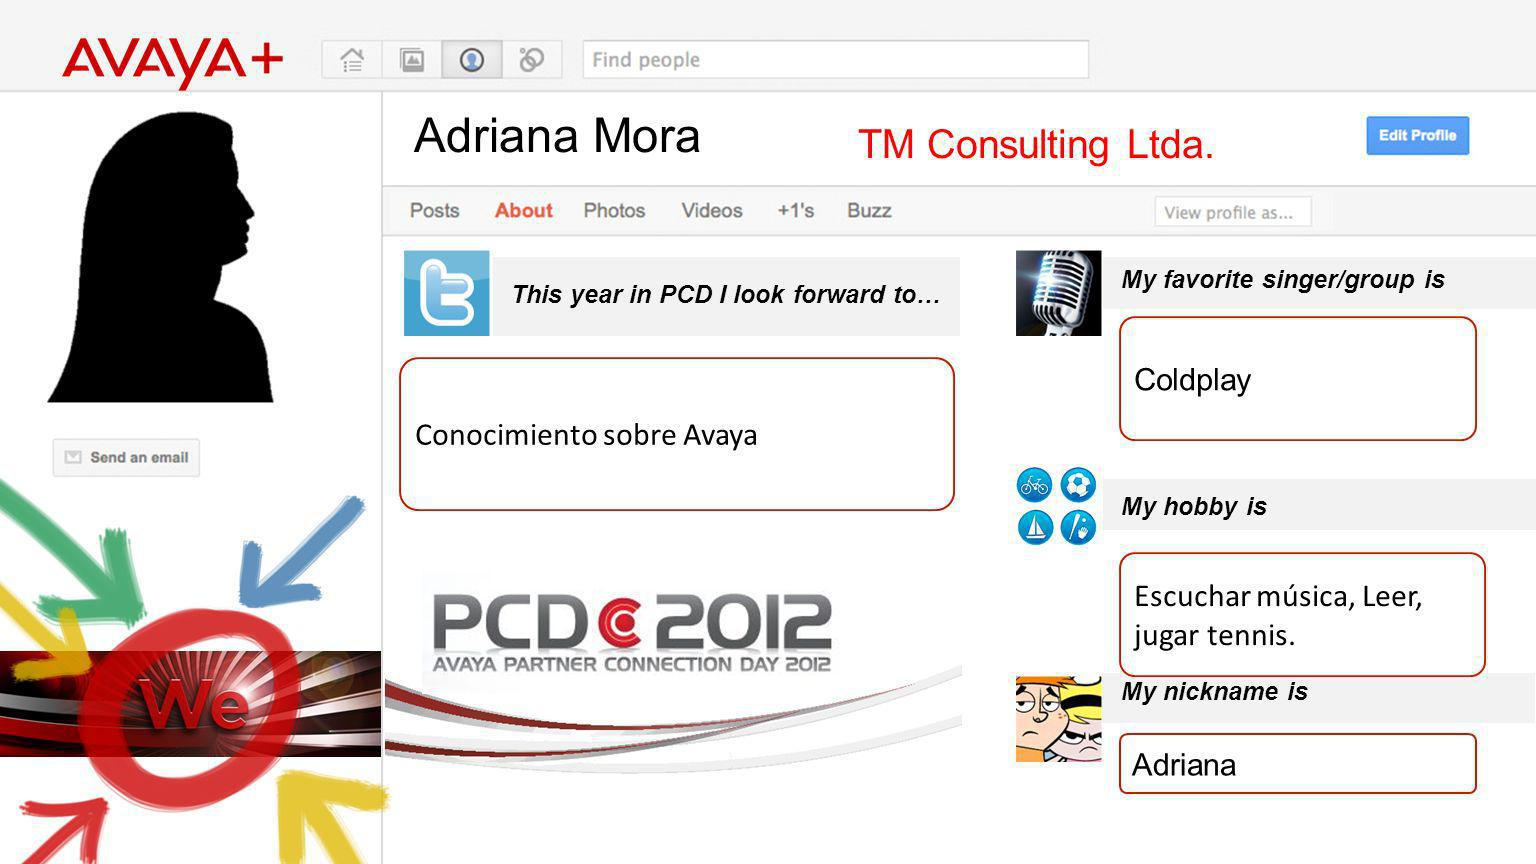 Adriana Mora This year in PCD I look forward to… TM Consulting Ltda.